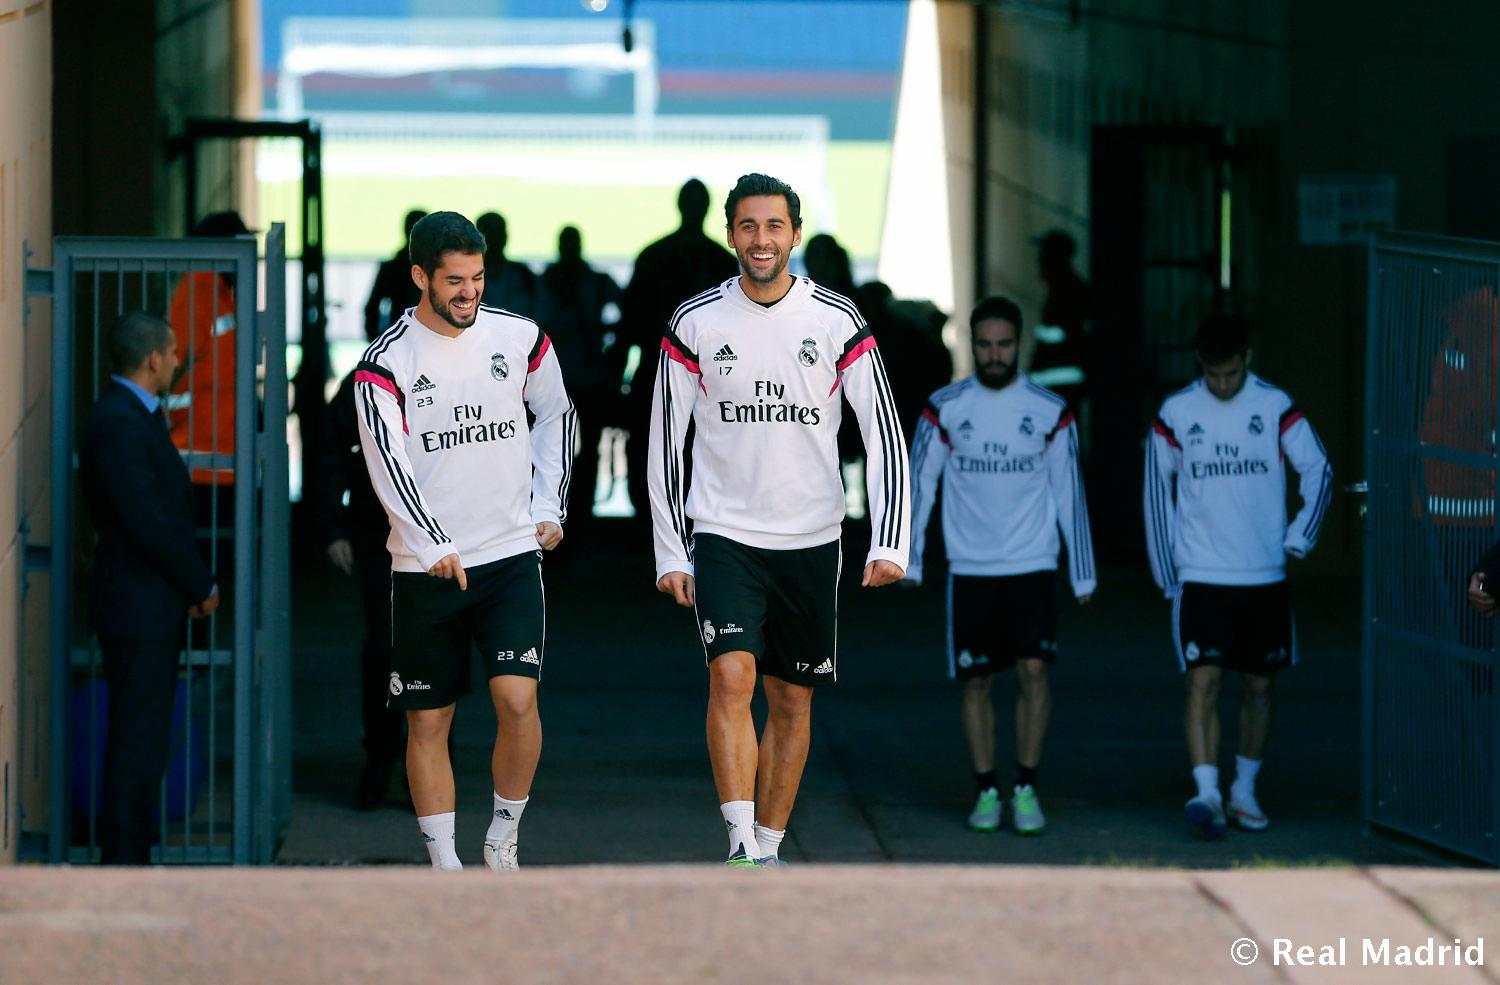 Real Madrid - Entrenamiento del Real Madrid - 18-12-2014